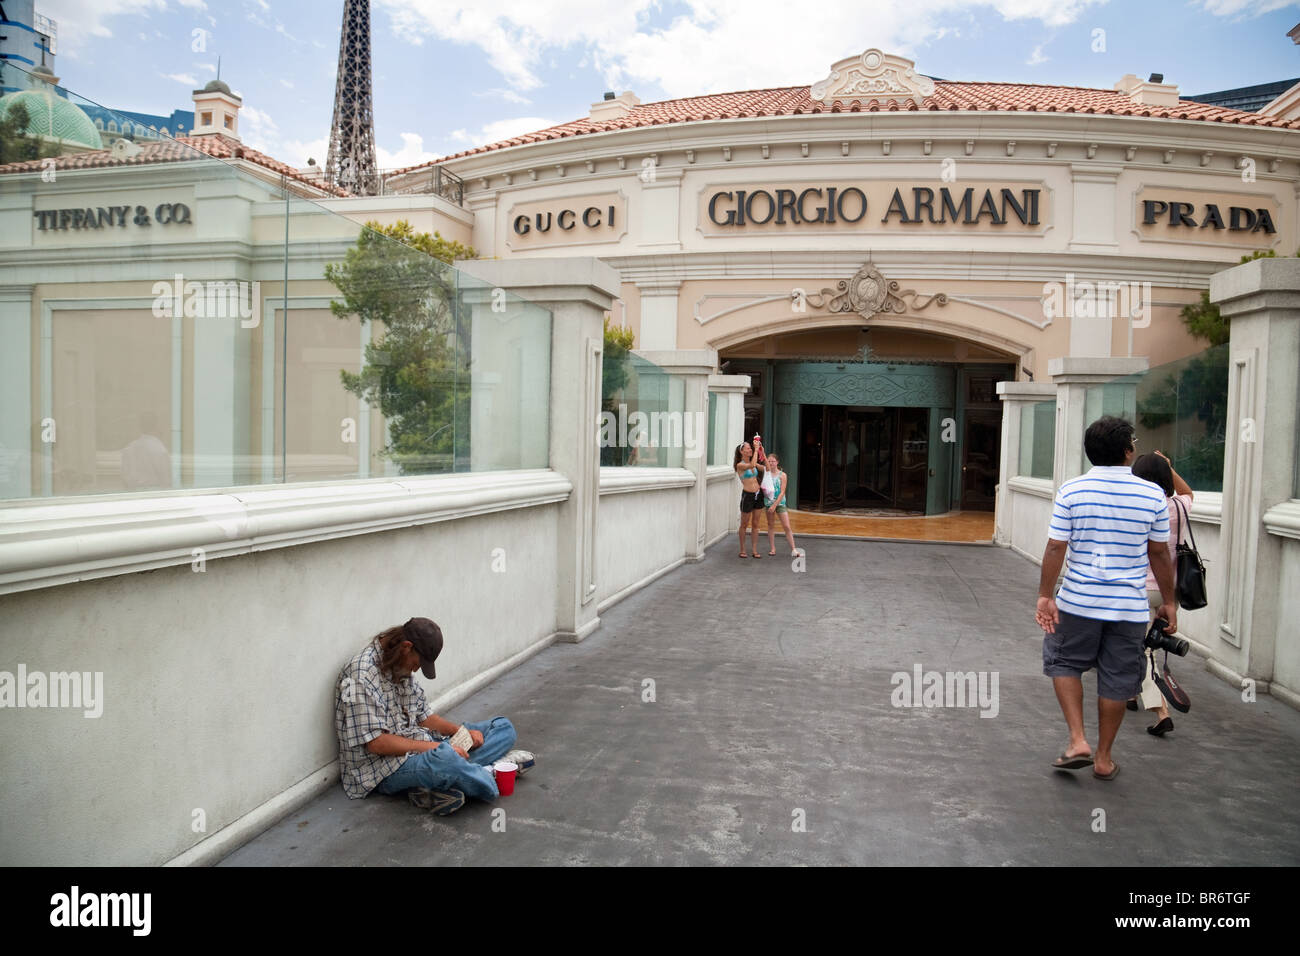 A beggar asking for money on the Strip, - concept rich and poor in america;  Las Vegas USA - Stock Image